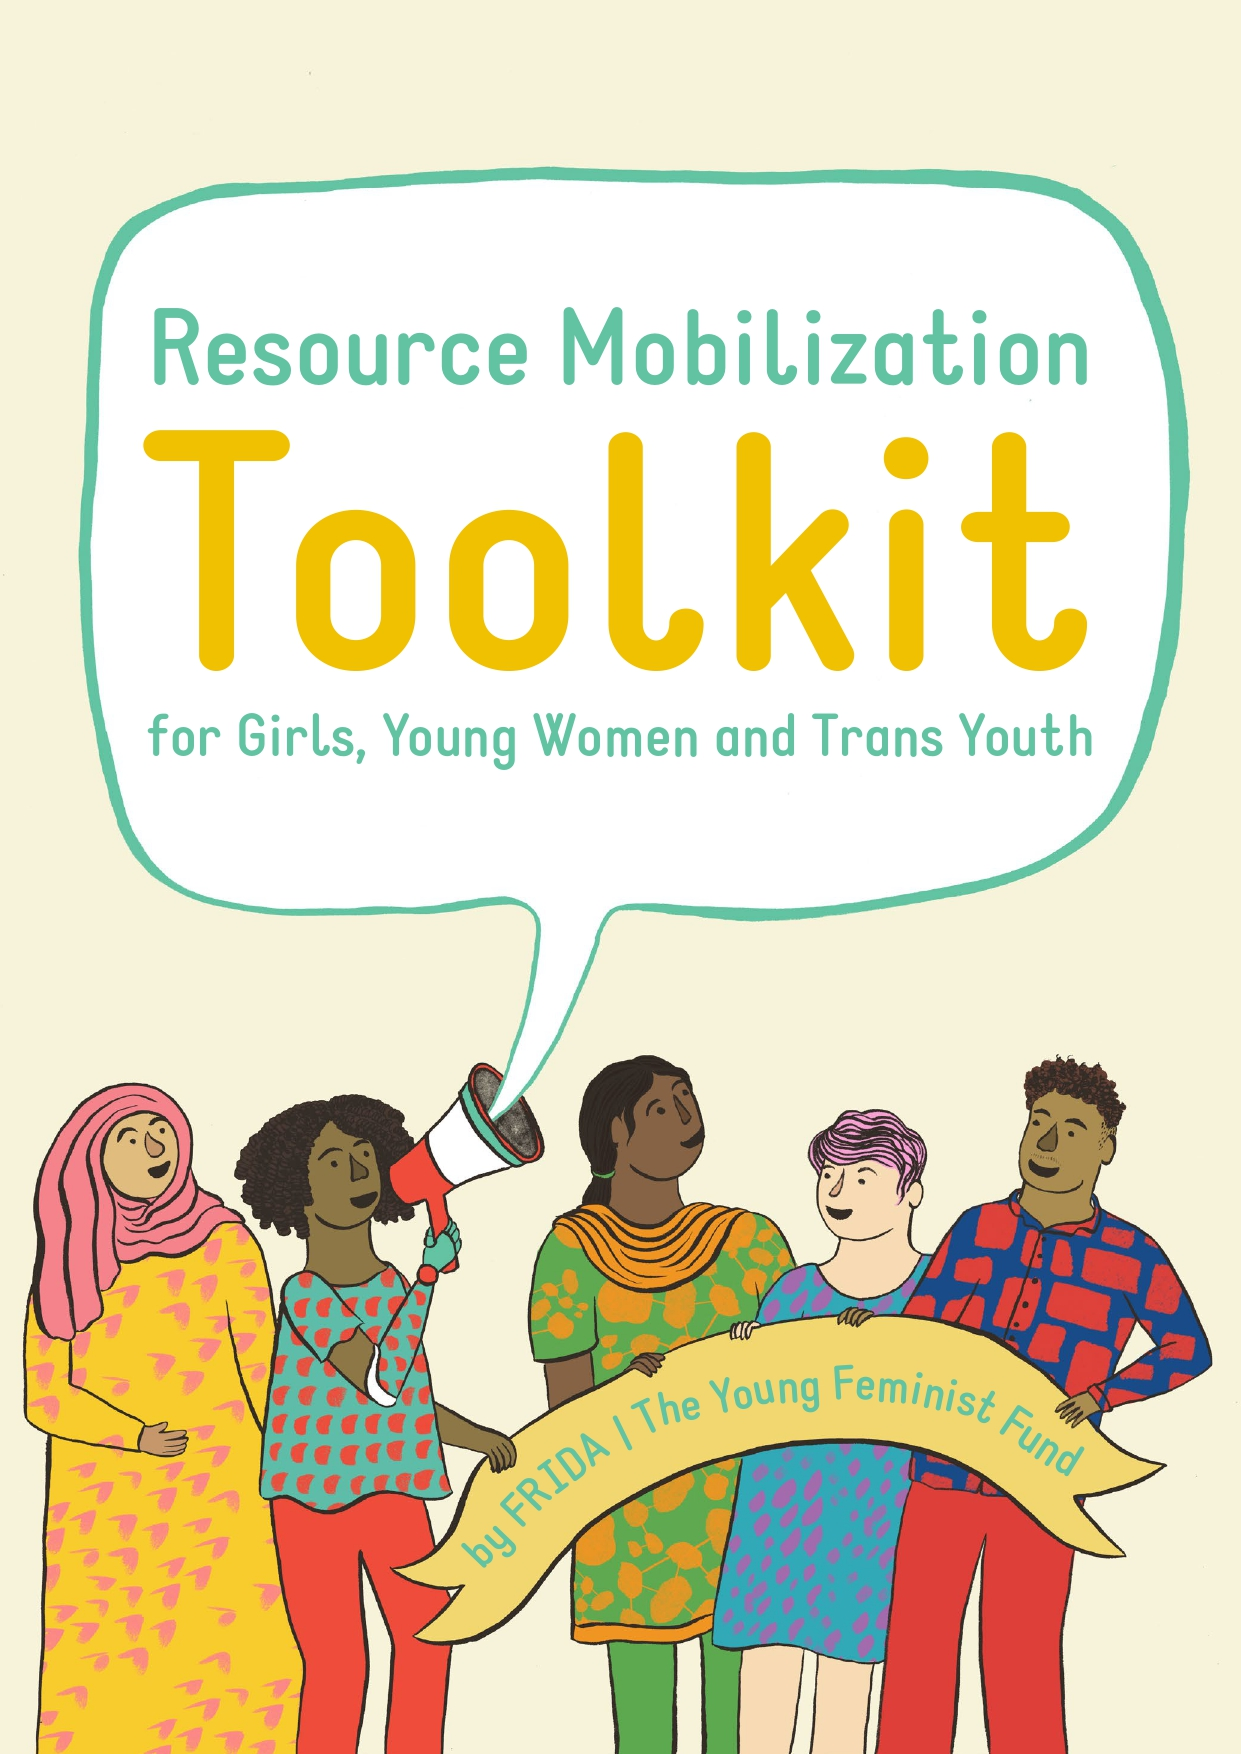 Resource Mobilization Toolkit for Girls, Young Women and Trans Youth